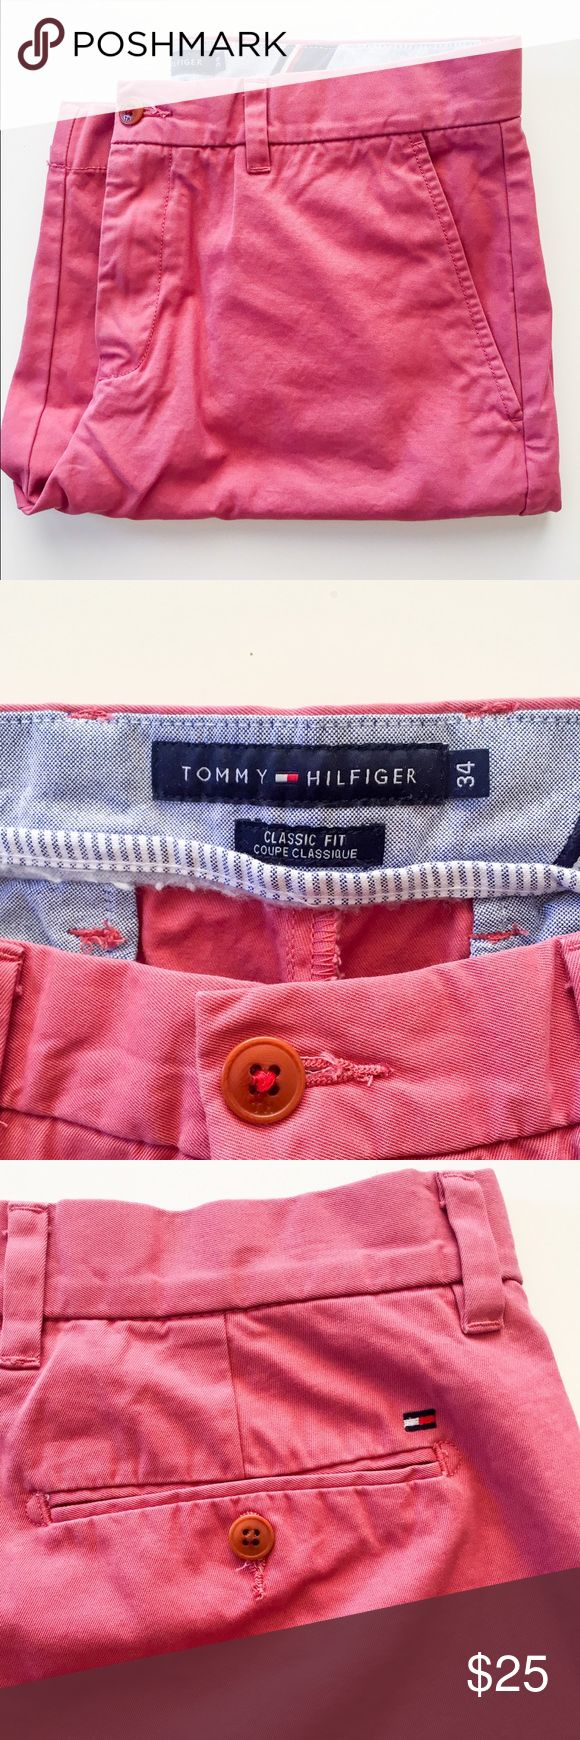 Tommy Hilfiger Men's Chino Shorts Tommy Hilfiger Men's Chino Shorts in burnt orange. NWOT. Size 34. Make an offer! Tommy Hilfiger Shorts Flat Front